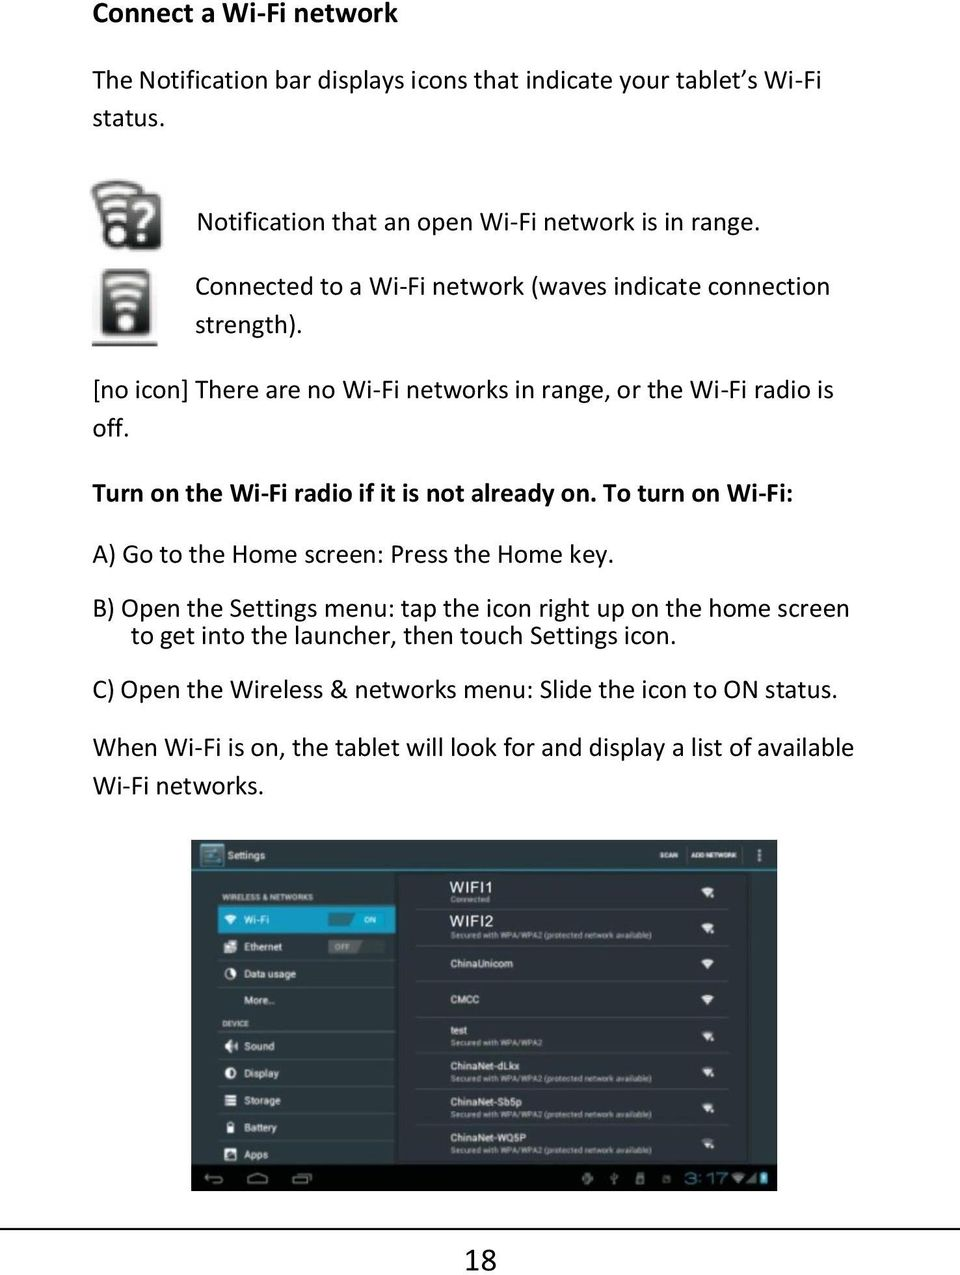 Turn on the Wi-Fi radio if it is not already on. To turn on Wi-Fi: A) Go to the Home screen: Press the Home key.